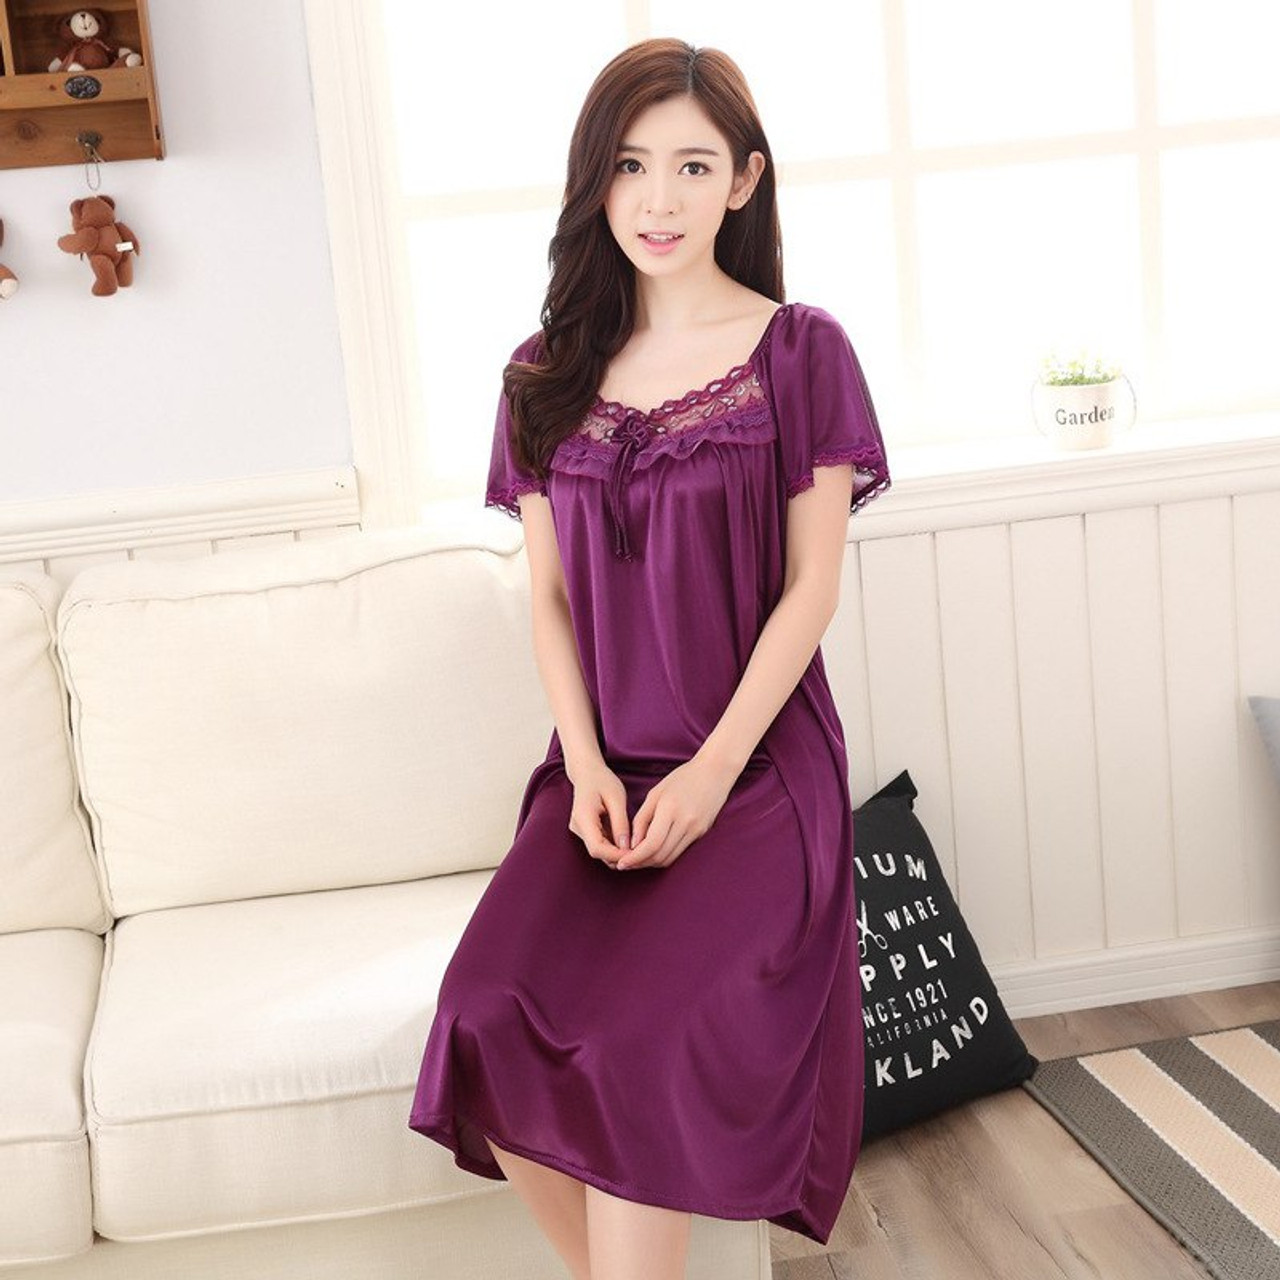 09d6363ce2 ... Hot 2018 Women s fashion Cozy Large size sleepwear Breathable Short  sleeve Nightgowns Sexy V-neck ...